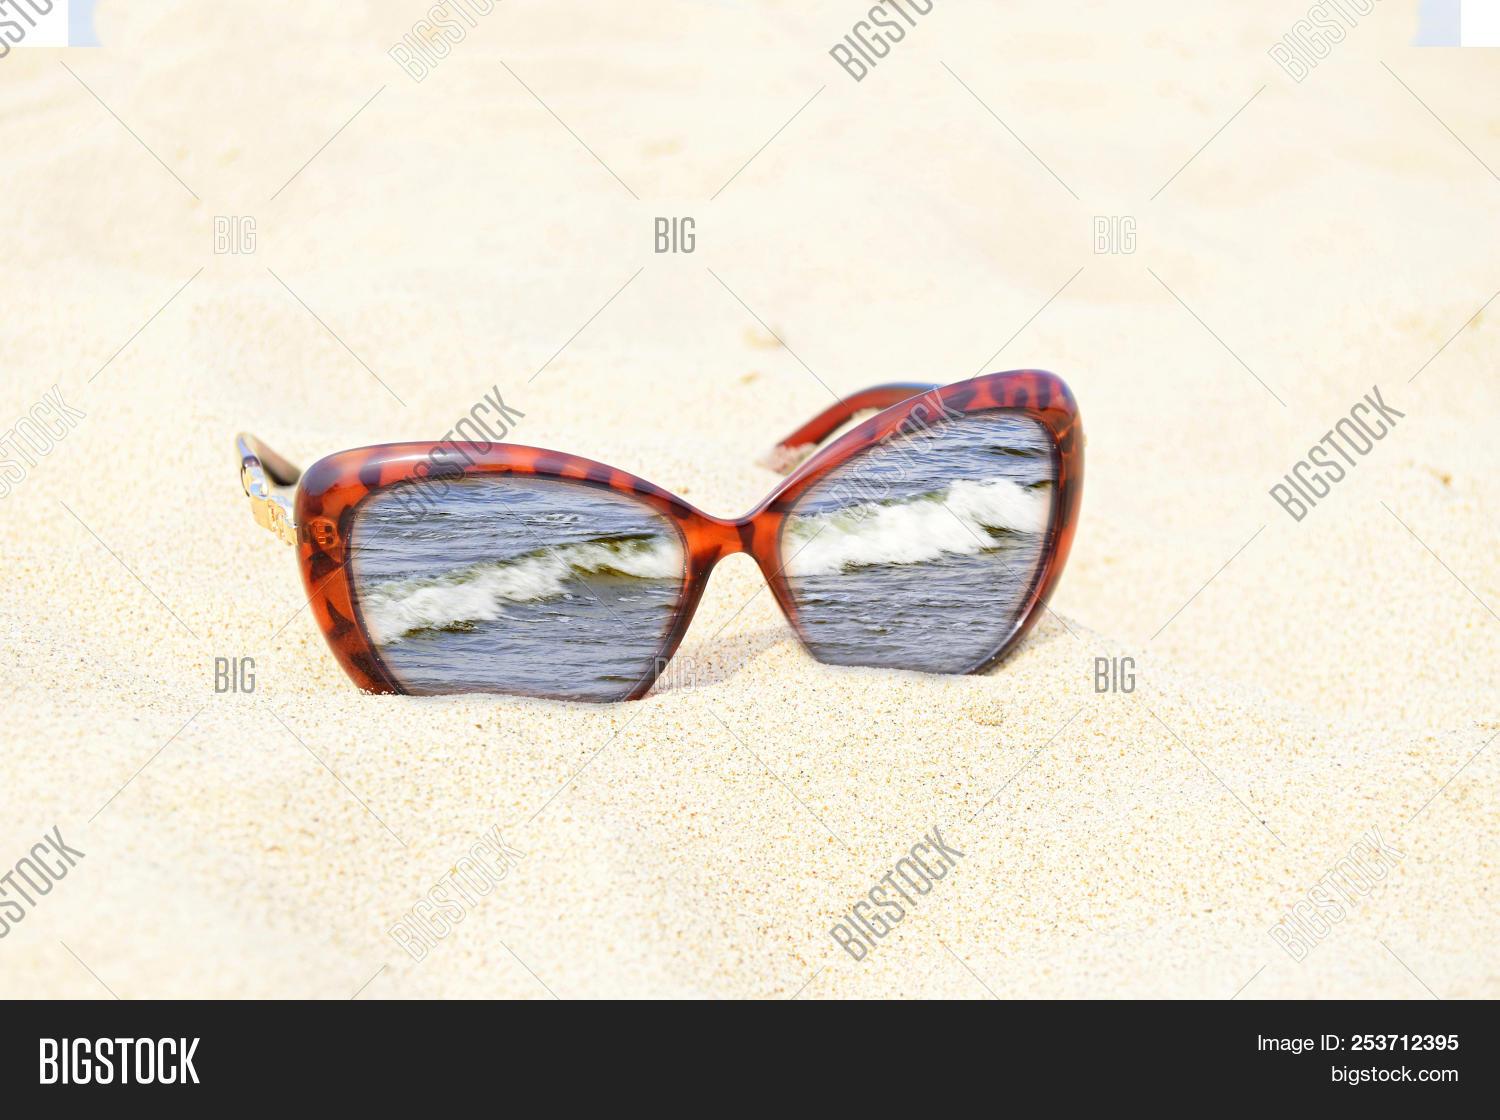 ▷ Sunglasses Are On Sand. The Image Of The Sea Is In A Frame Of ...